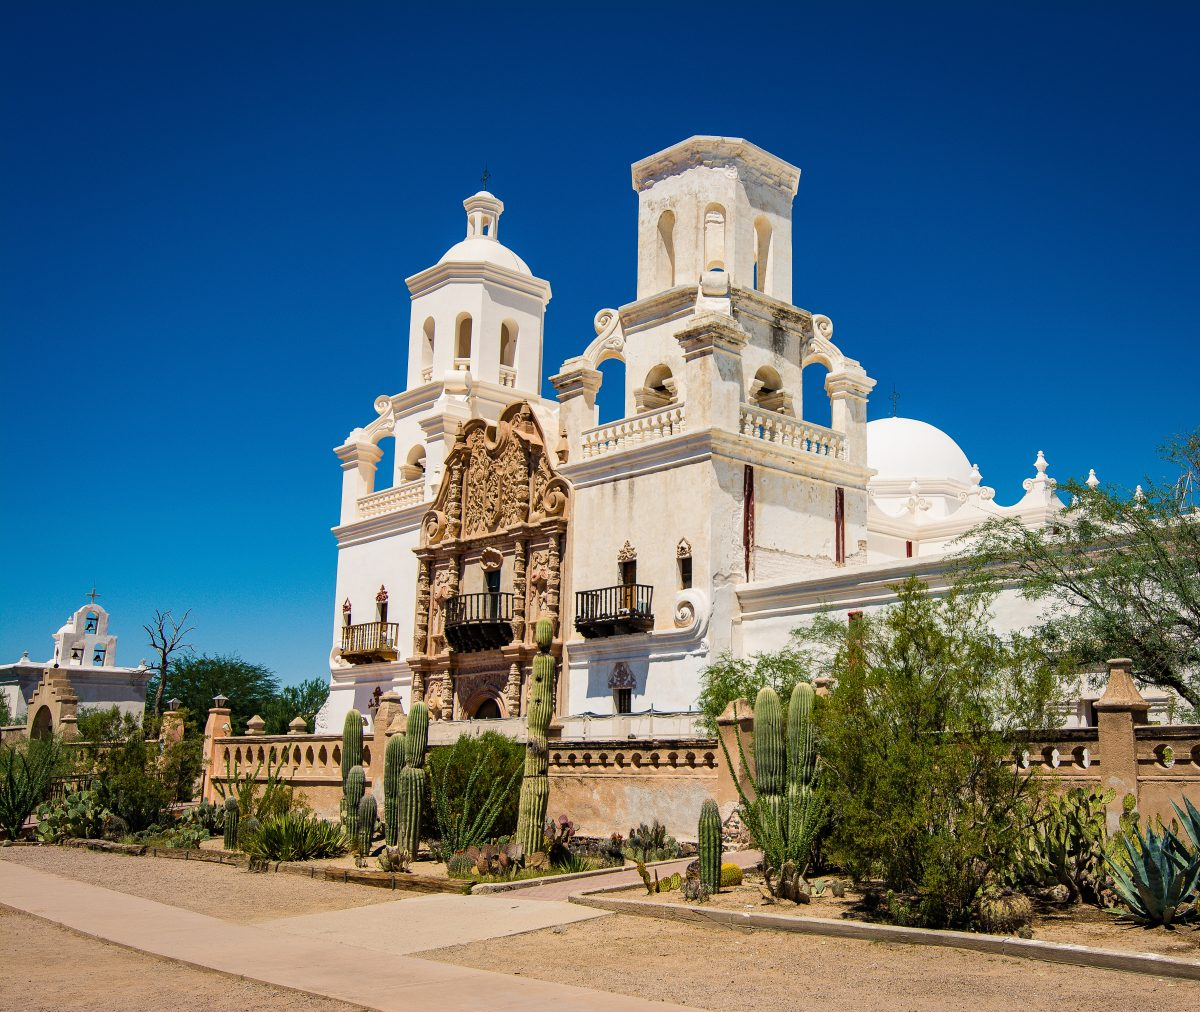 White exterior of Mission San Xavier del Bac, Tucson